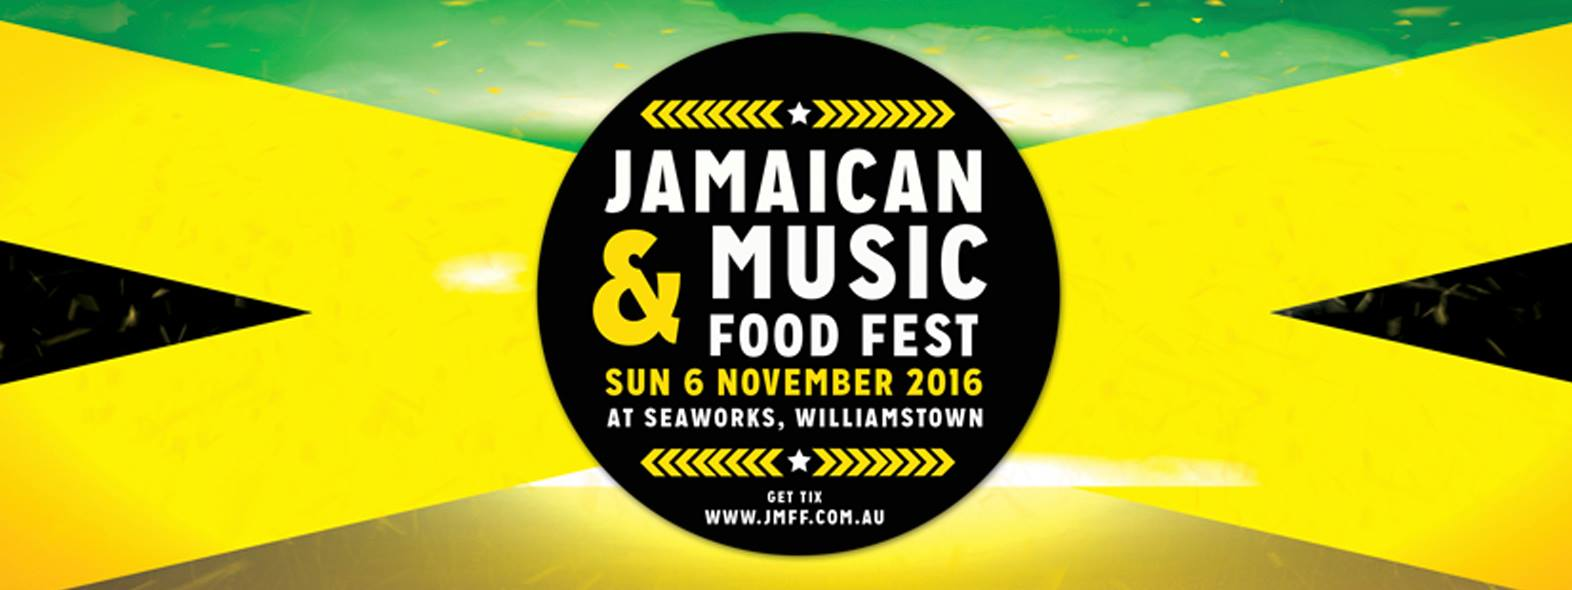 A whole day of things Jamaican, what's not to love